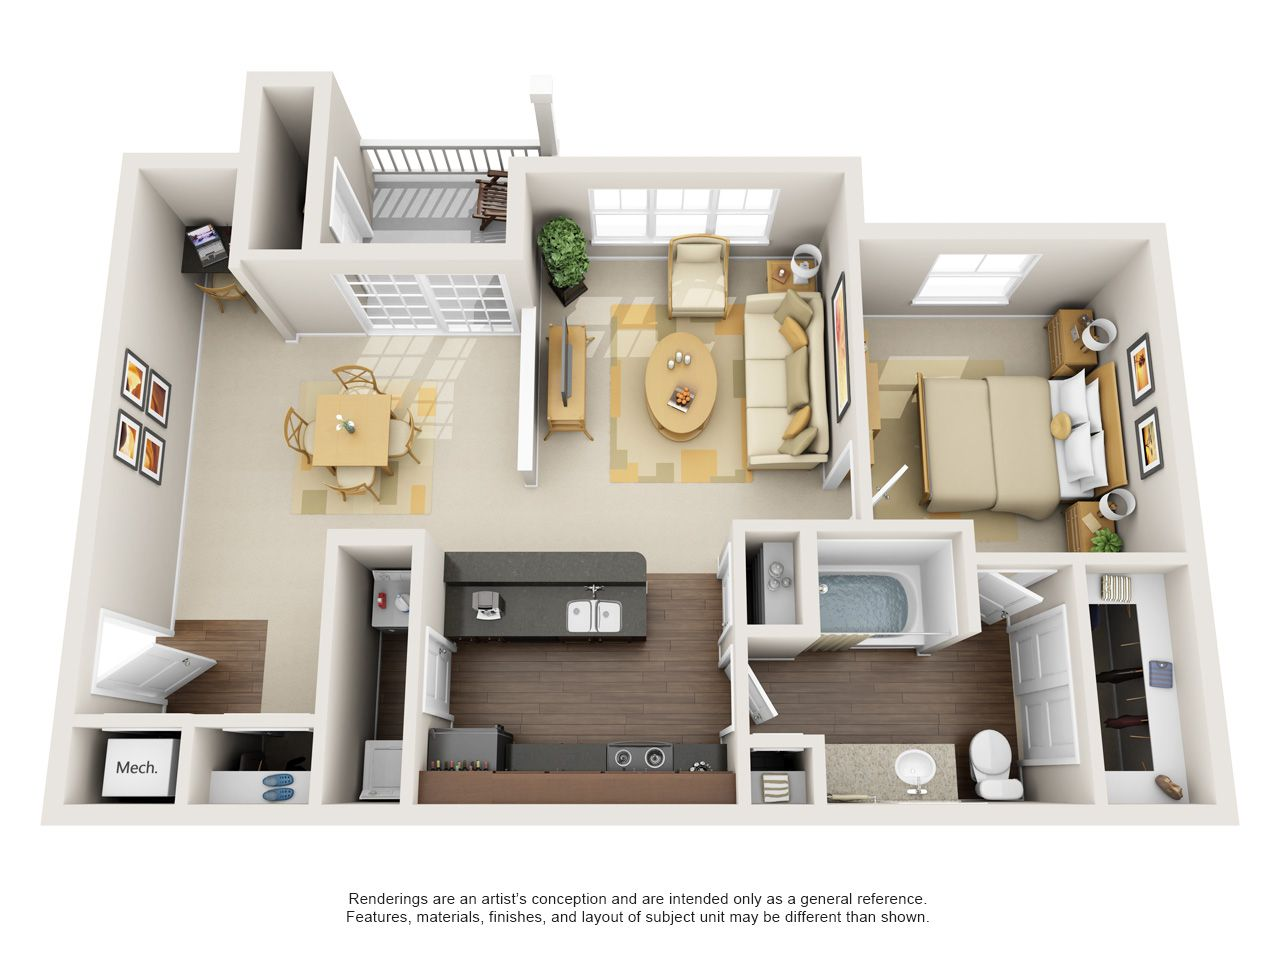 1 2 And 3 Bedroom Luxury Apartments In Fort Wayne In Fortwayne Indiana Apartment Steadfa Small Apartment Floor Plans Apartment Layout Luxurious Bedrooms